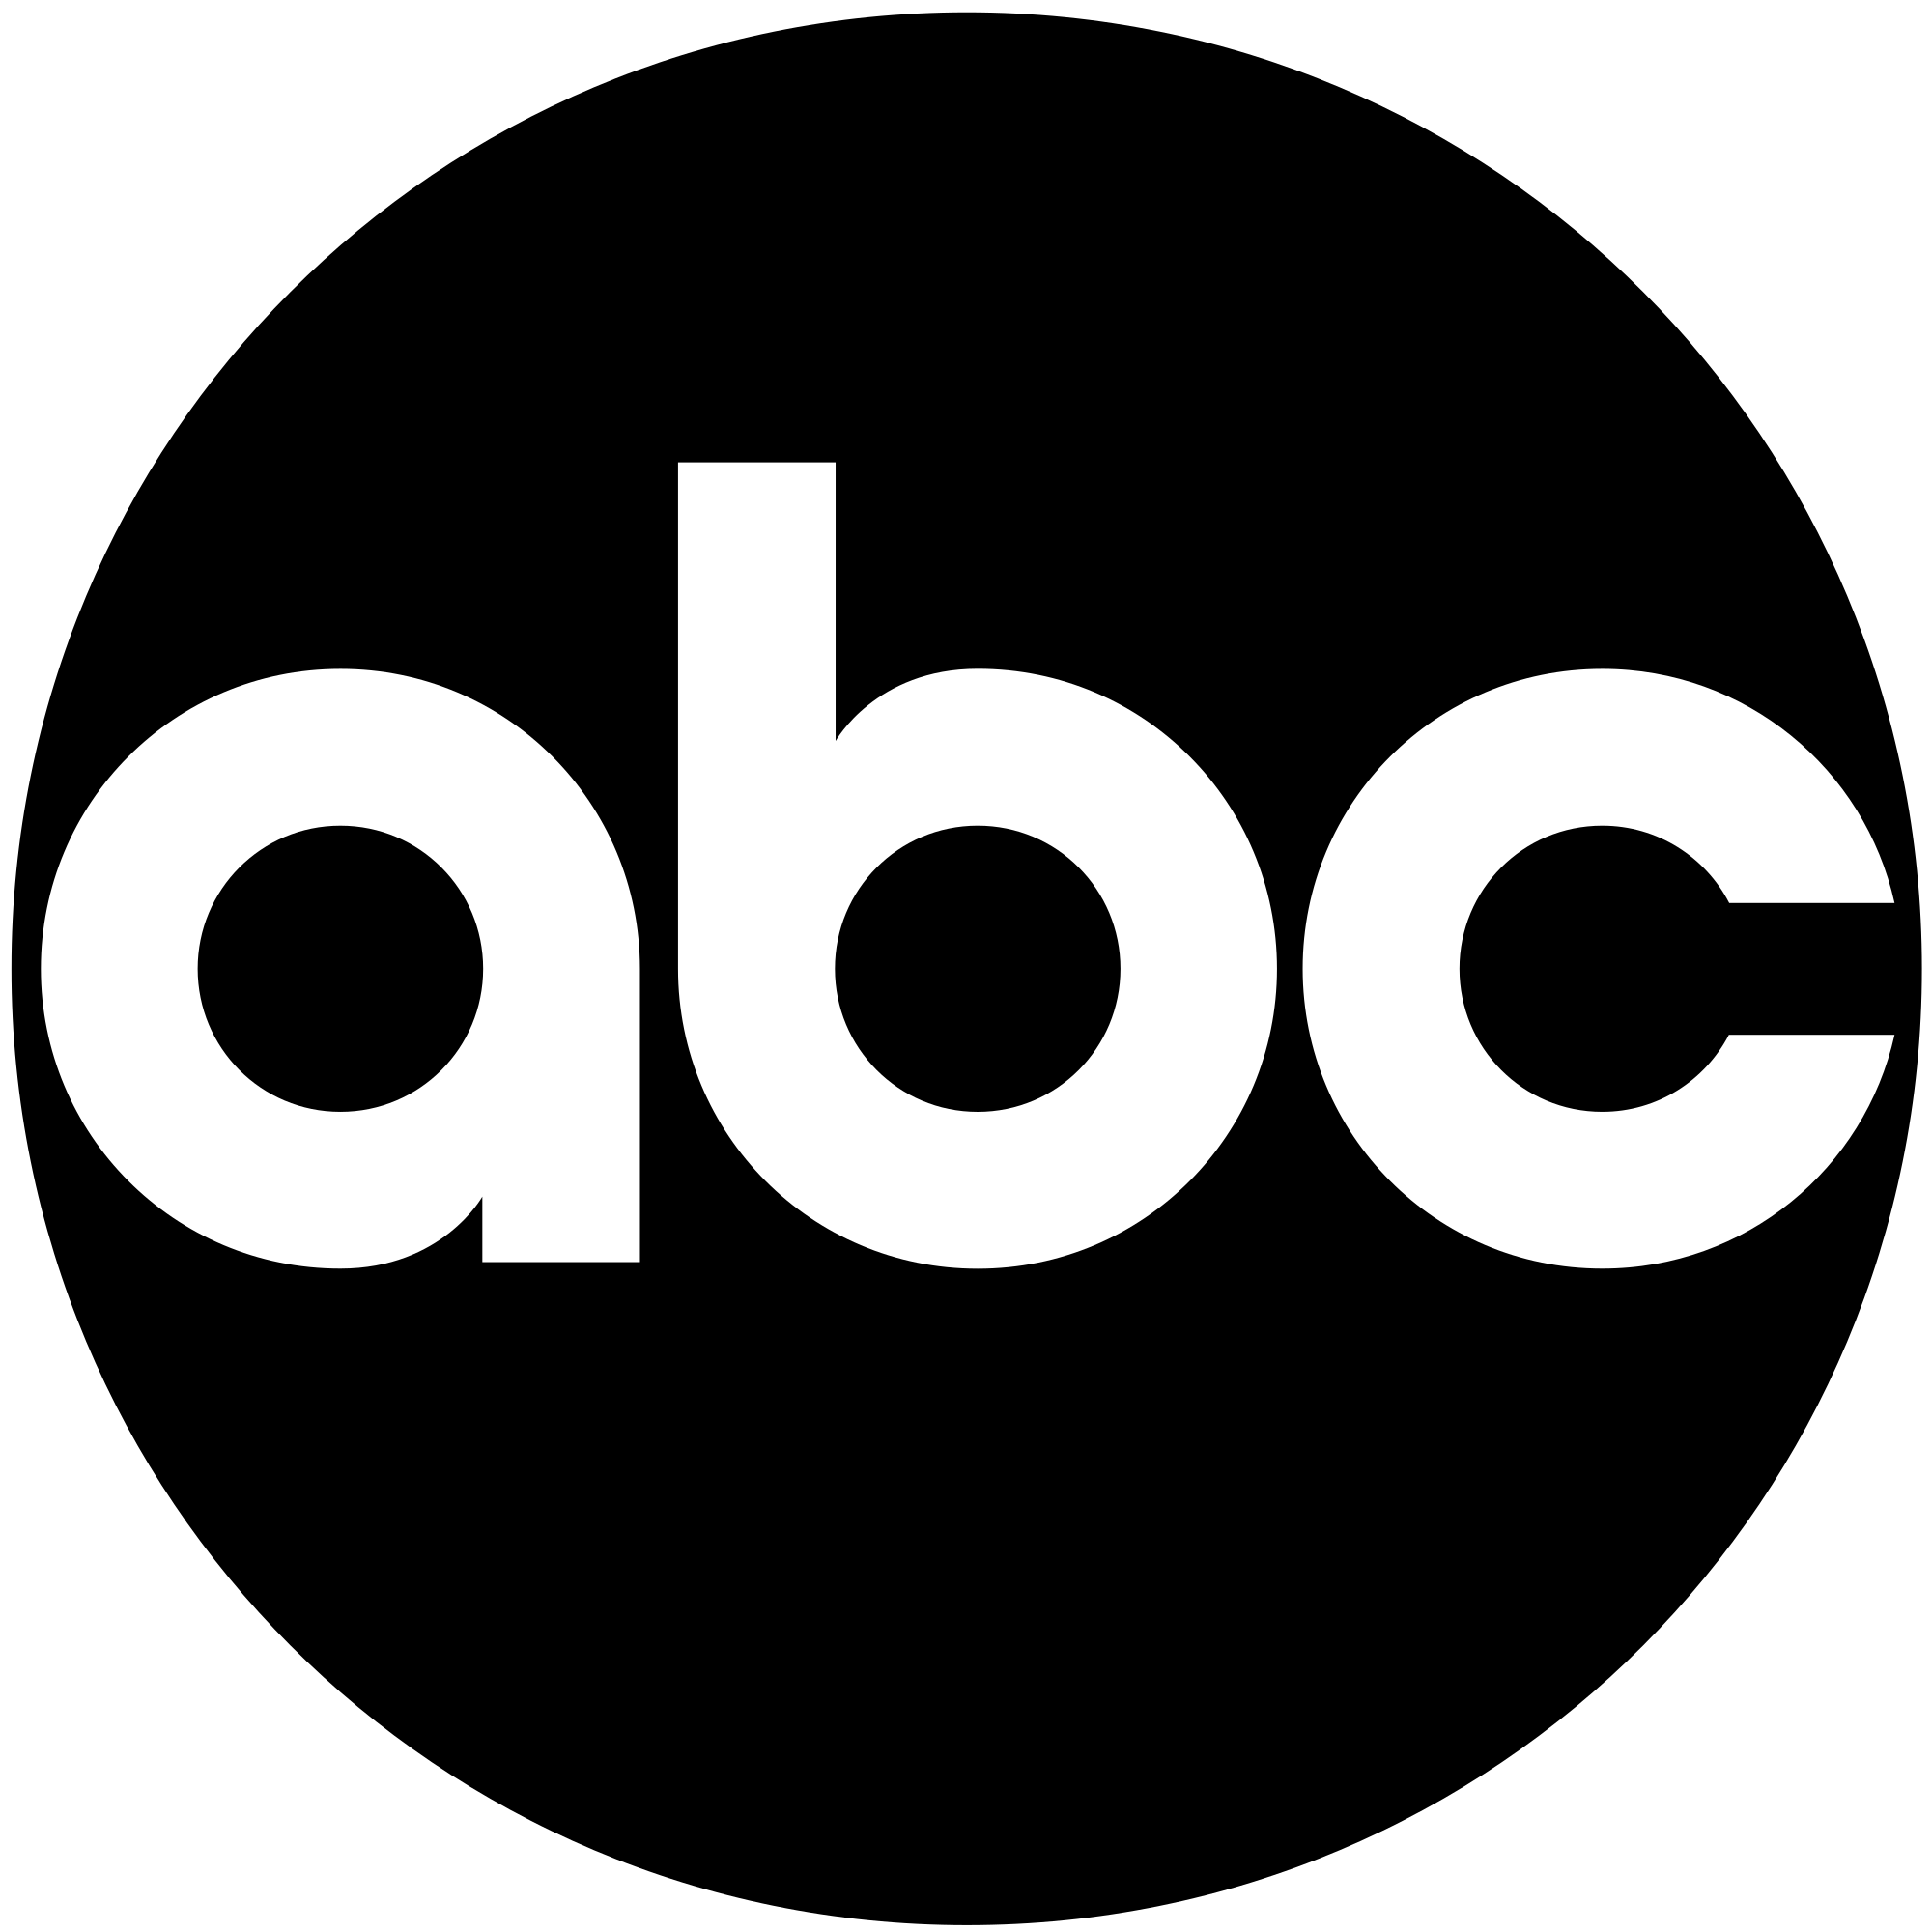 Abc logo png. File american broadcasting company